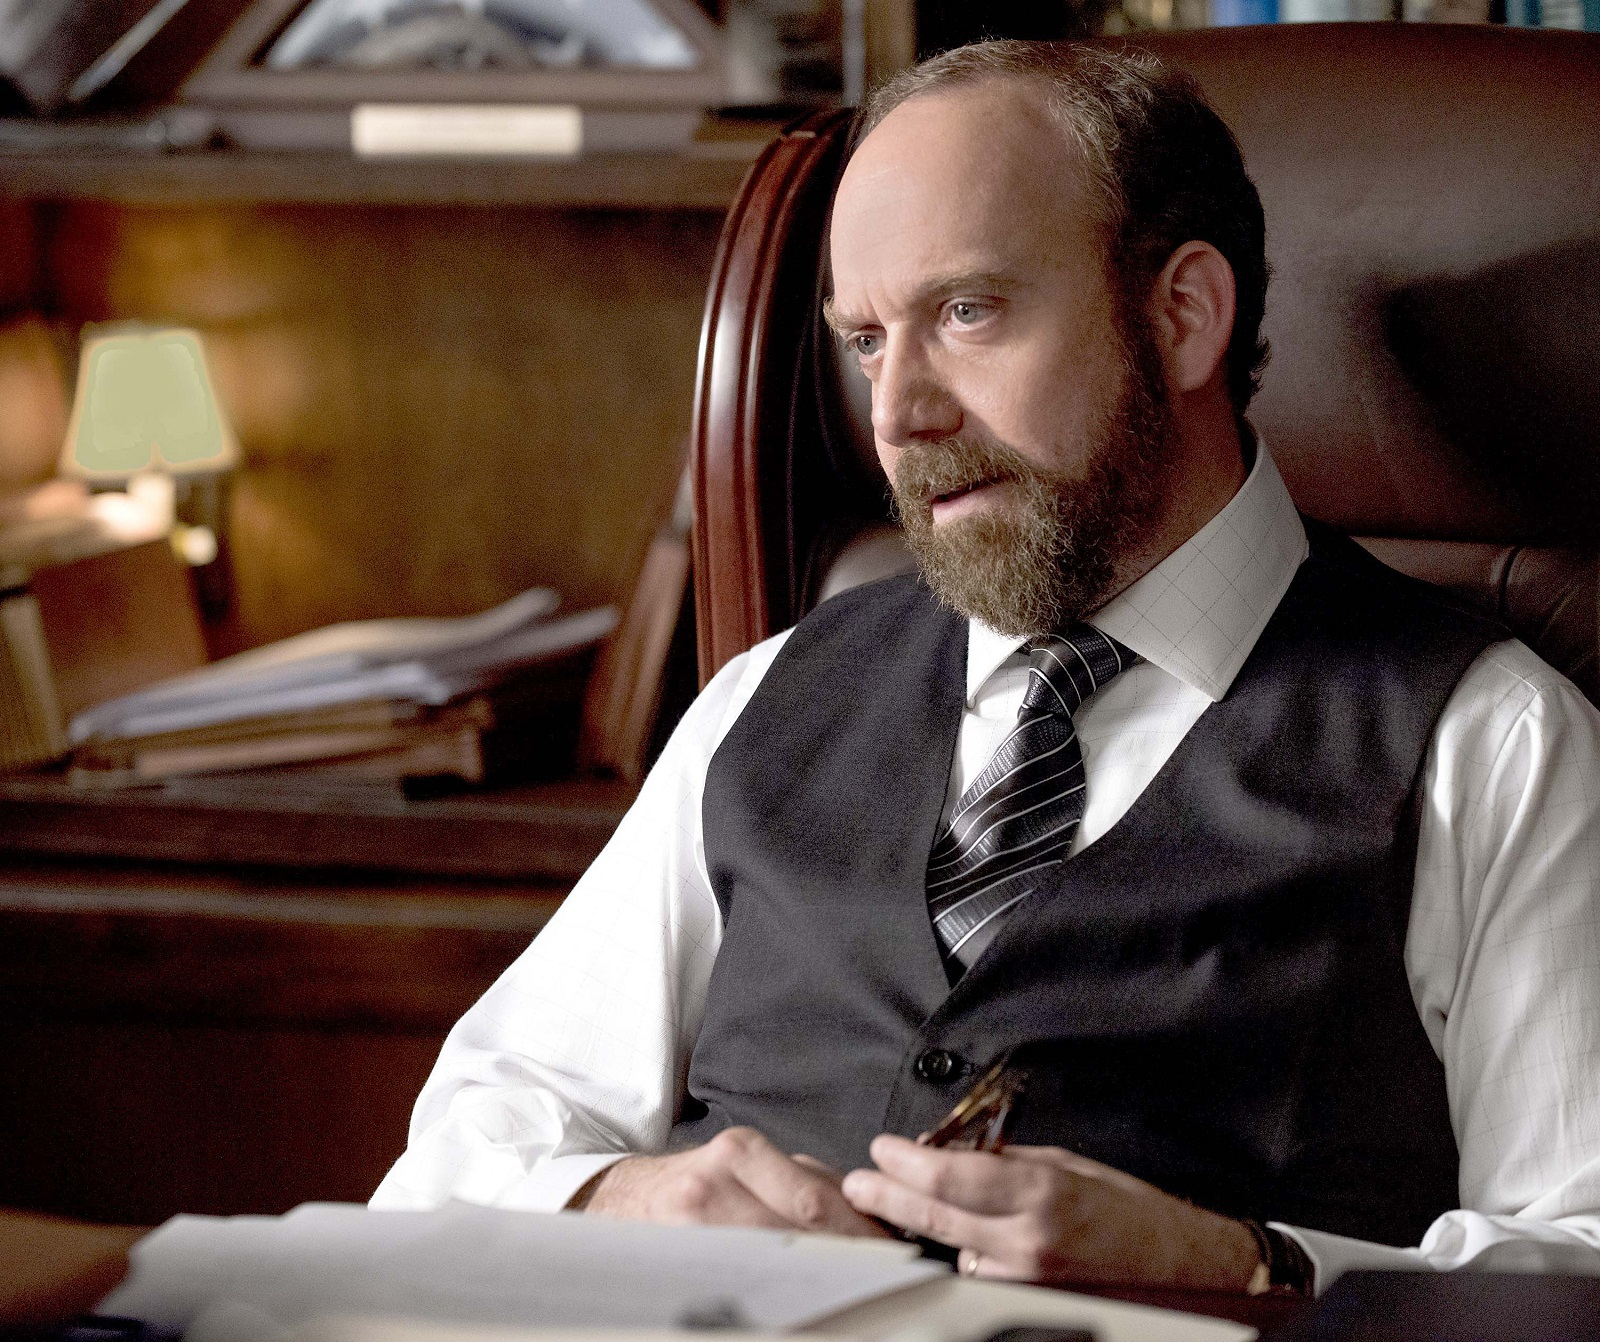 Paul Giamatti as Churck Rhoades in Showtime's 'Billions.' (Jeff Neumann/Showtime)